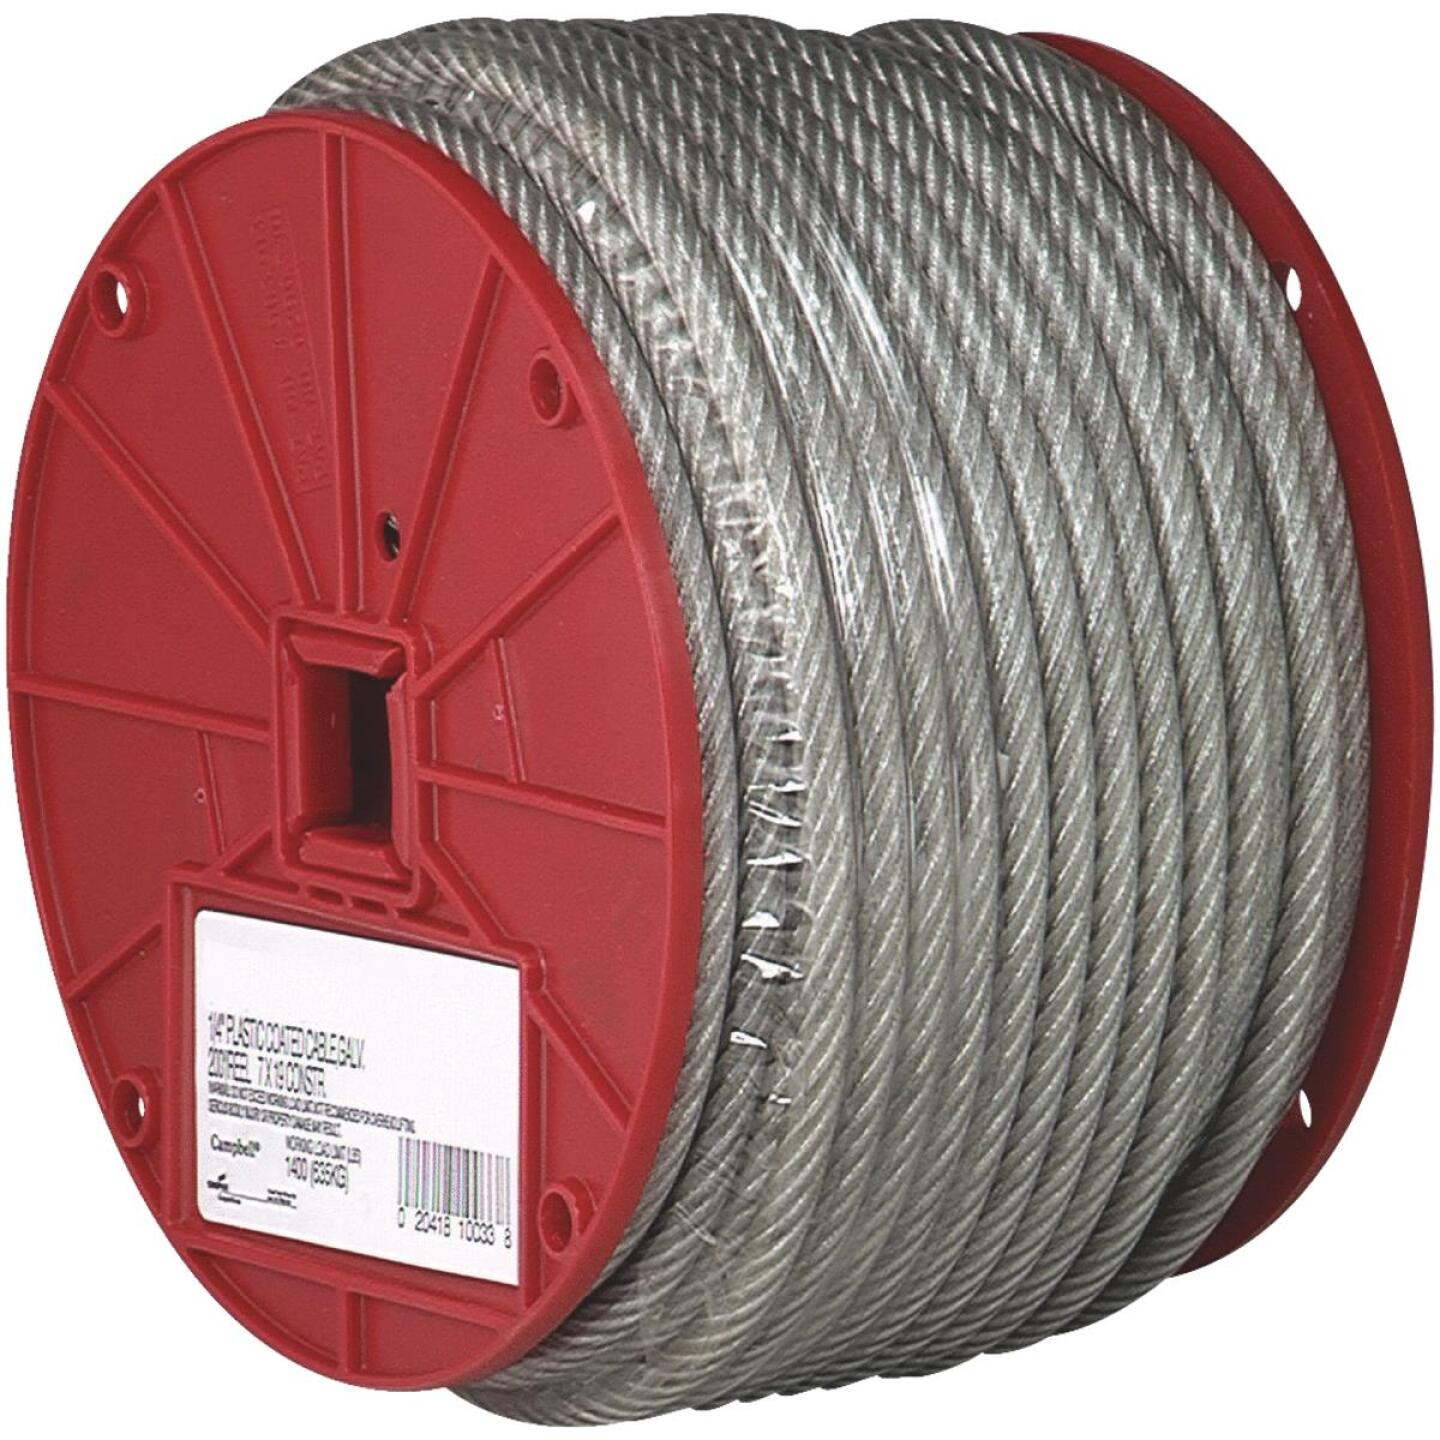 Campbell 1/4 In. x 200 Ft. Vinyl-Coated Galvanized Clothesline Cable Image 1